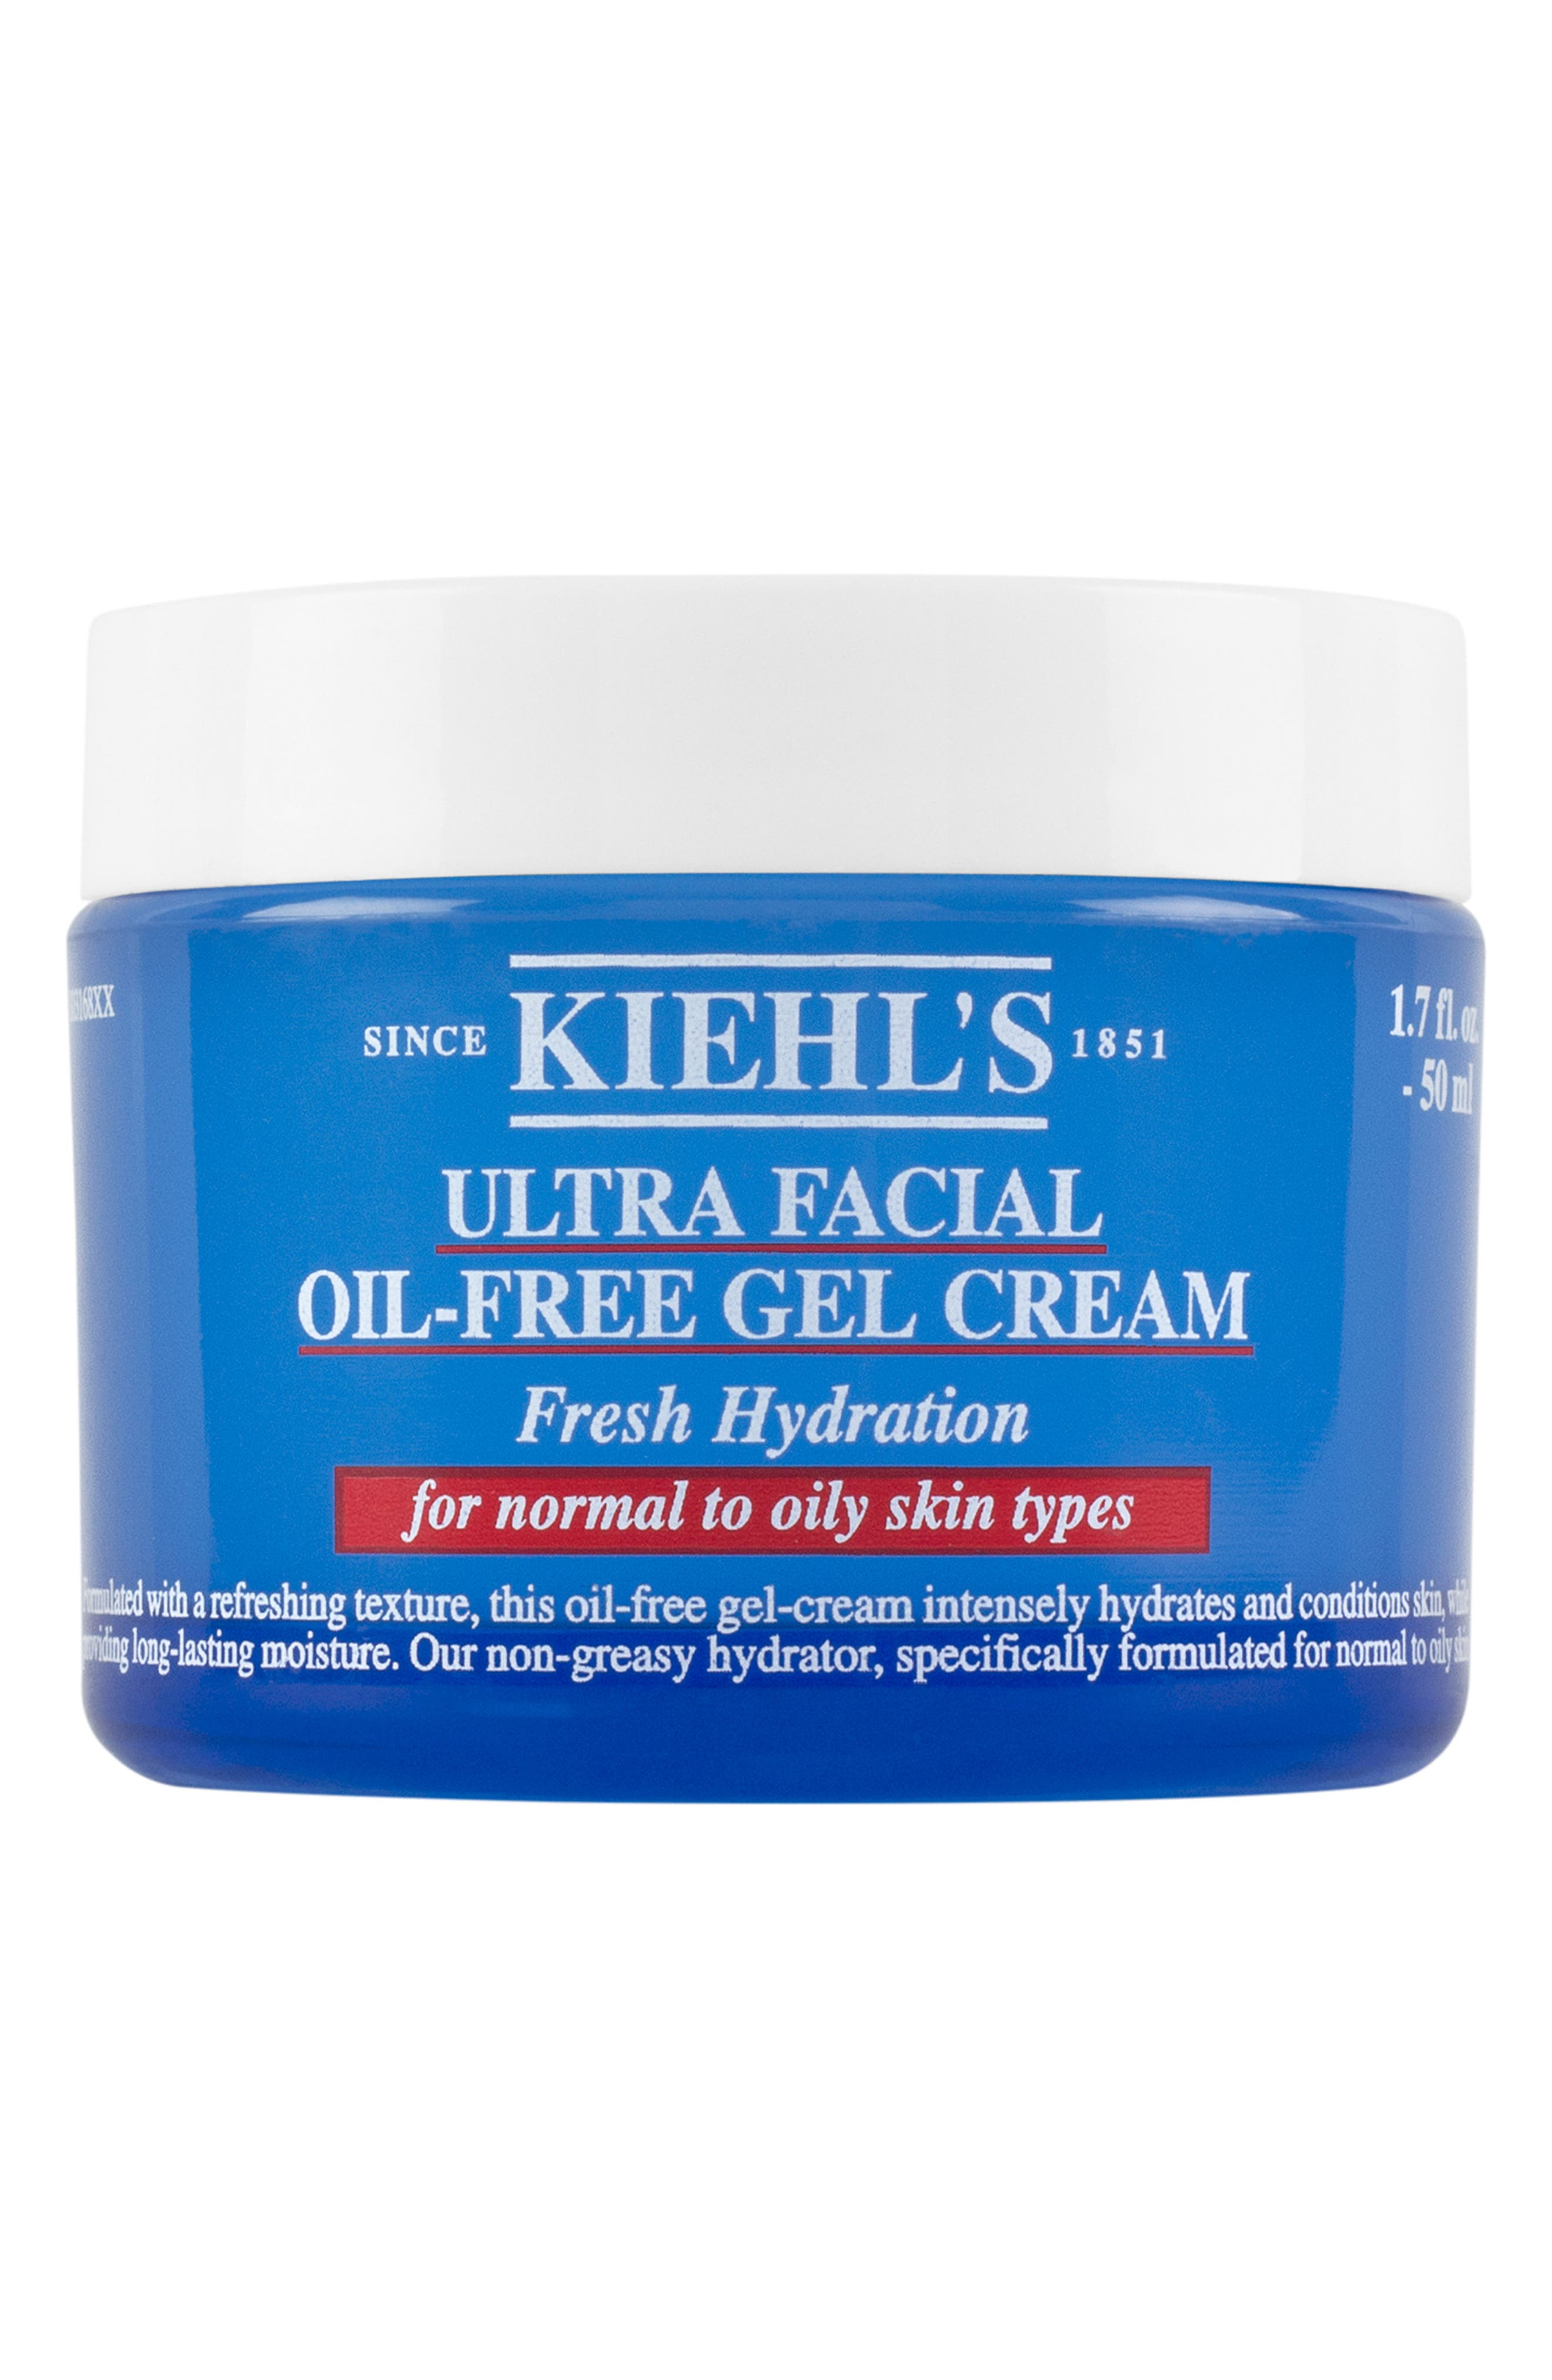 Alternate Image 1 Selected - Kiehl's Since 1851 'Ultra Facial' Oil-Free Gel Cream